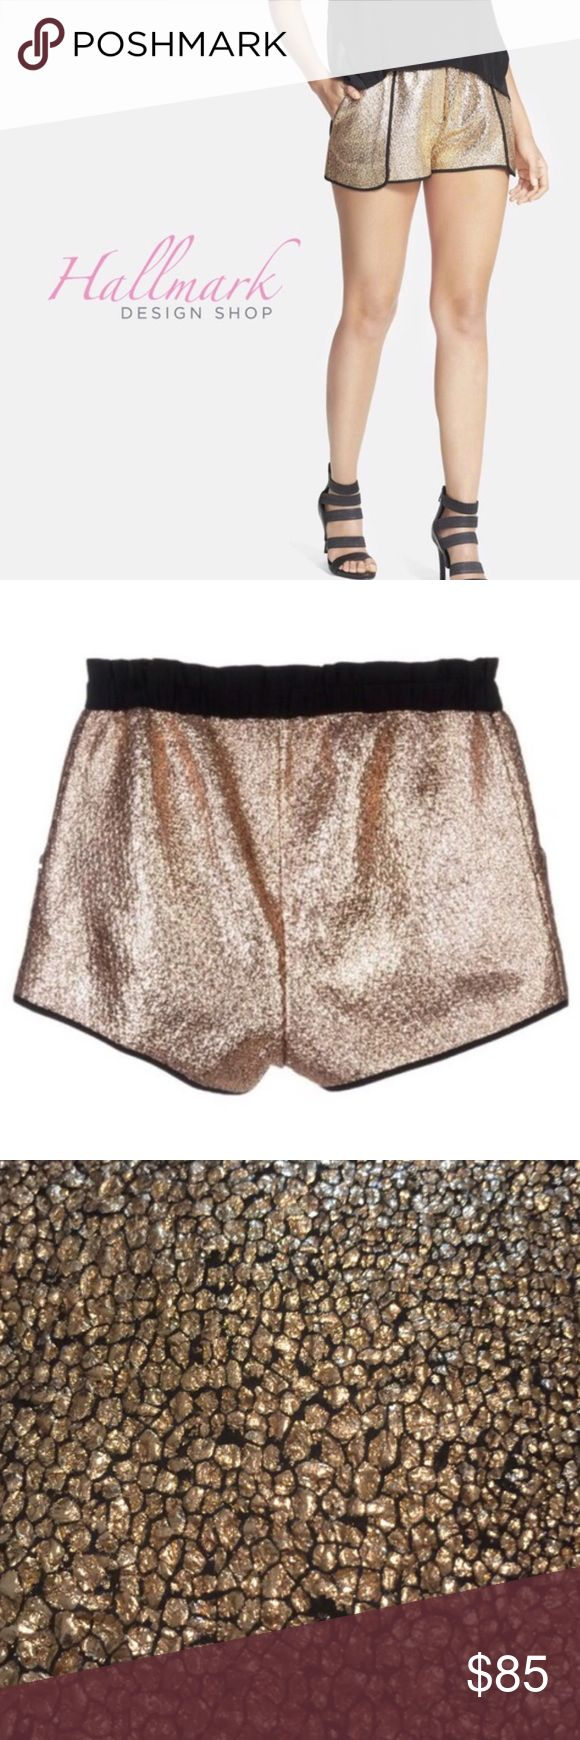 Whitney Eve Luxury Golden Shorts So cute! Pair it with the Whitney Eve Golden Shower Top available in my closet! 📏 Medium: 15 inches across waist and 14 inches long. Bundle and save 10%! Comment with questions! High end. You can tell it retails over $100 Whitney Eve Shorts